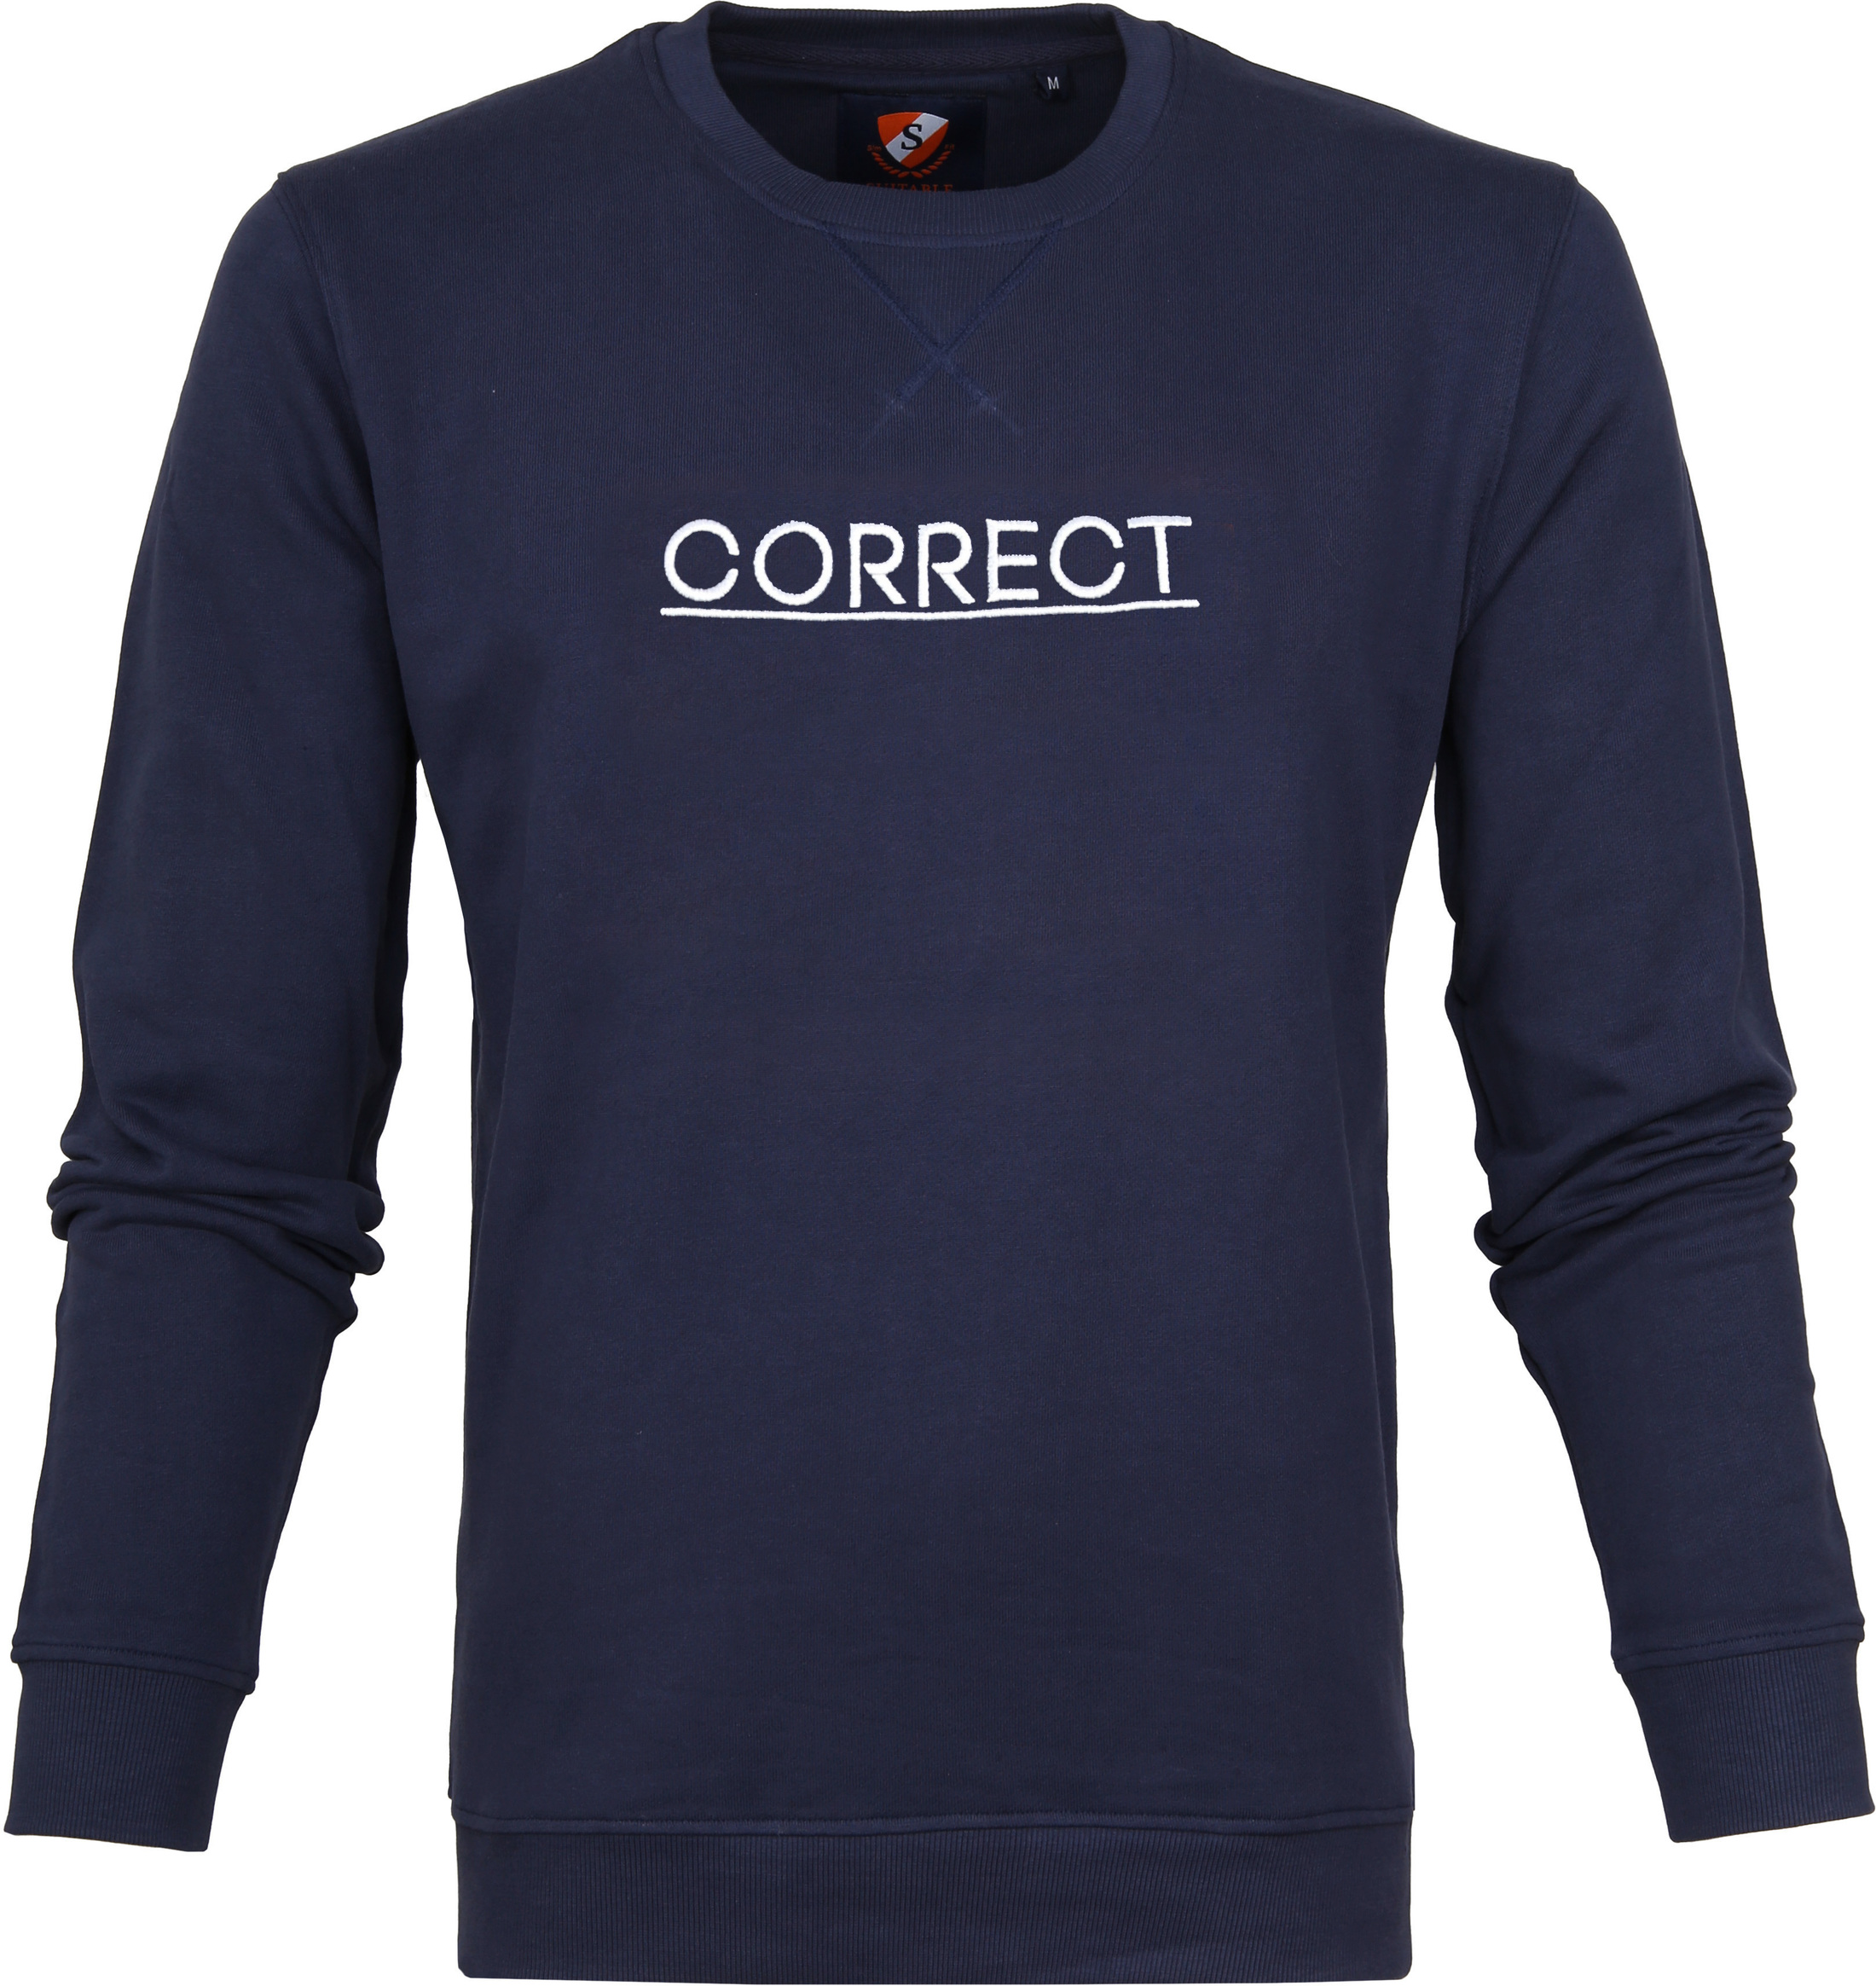 Suitable Cotton Sweater Correct